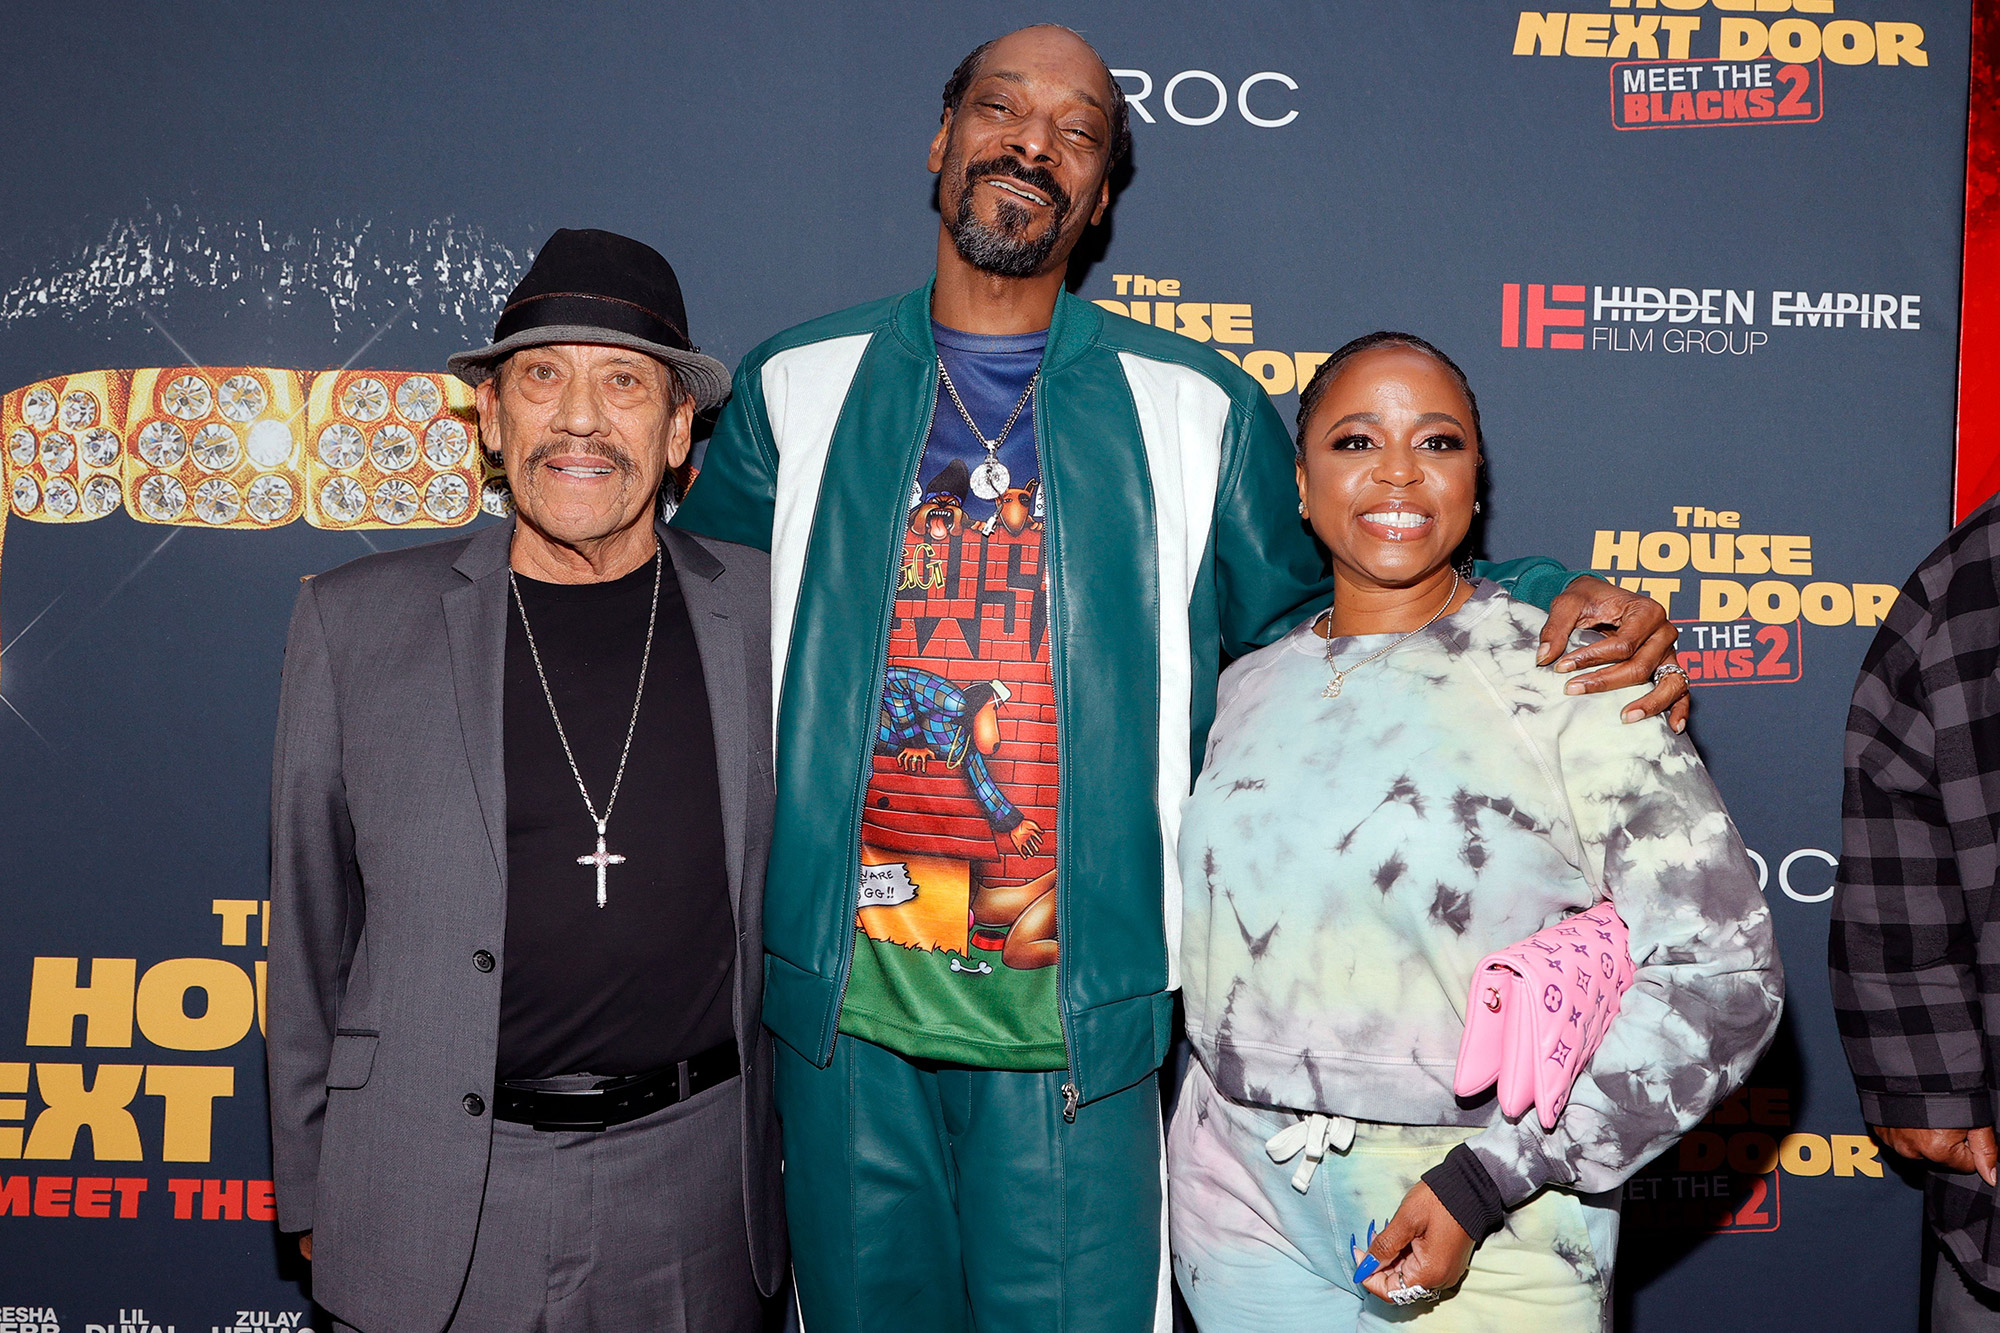 """Danny Trejo, Snoop Dogg, and Shante Broadus attend the premiere of """"The House Next Door: Meet The Blacks 2"""" at Regal LA Live: A Barco Innovation Center on June 07, 2021 in Los Angeles, California"""